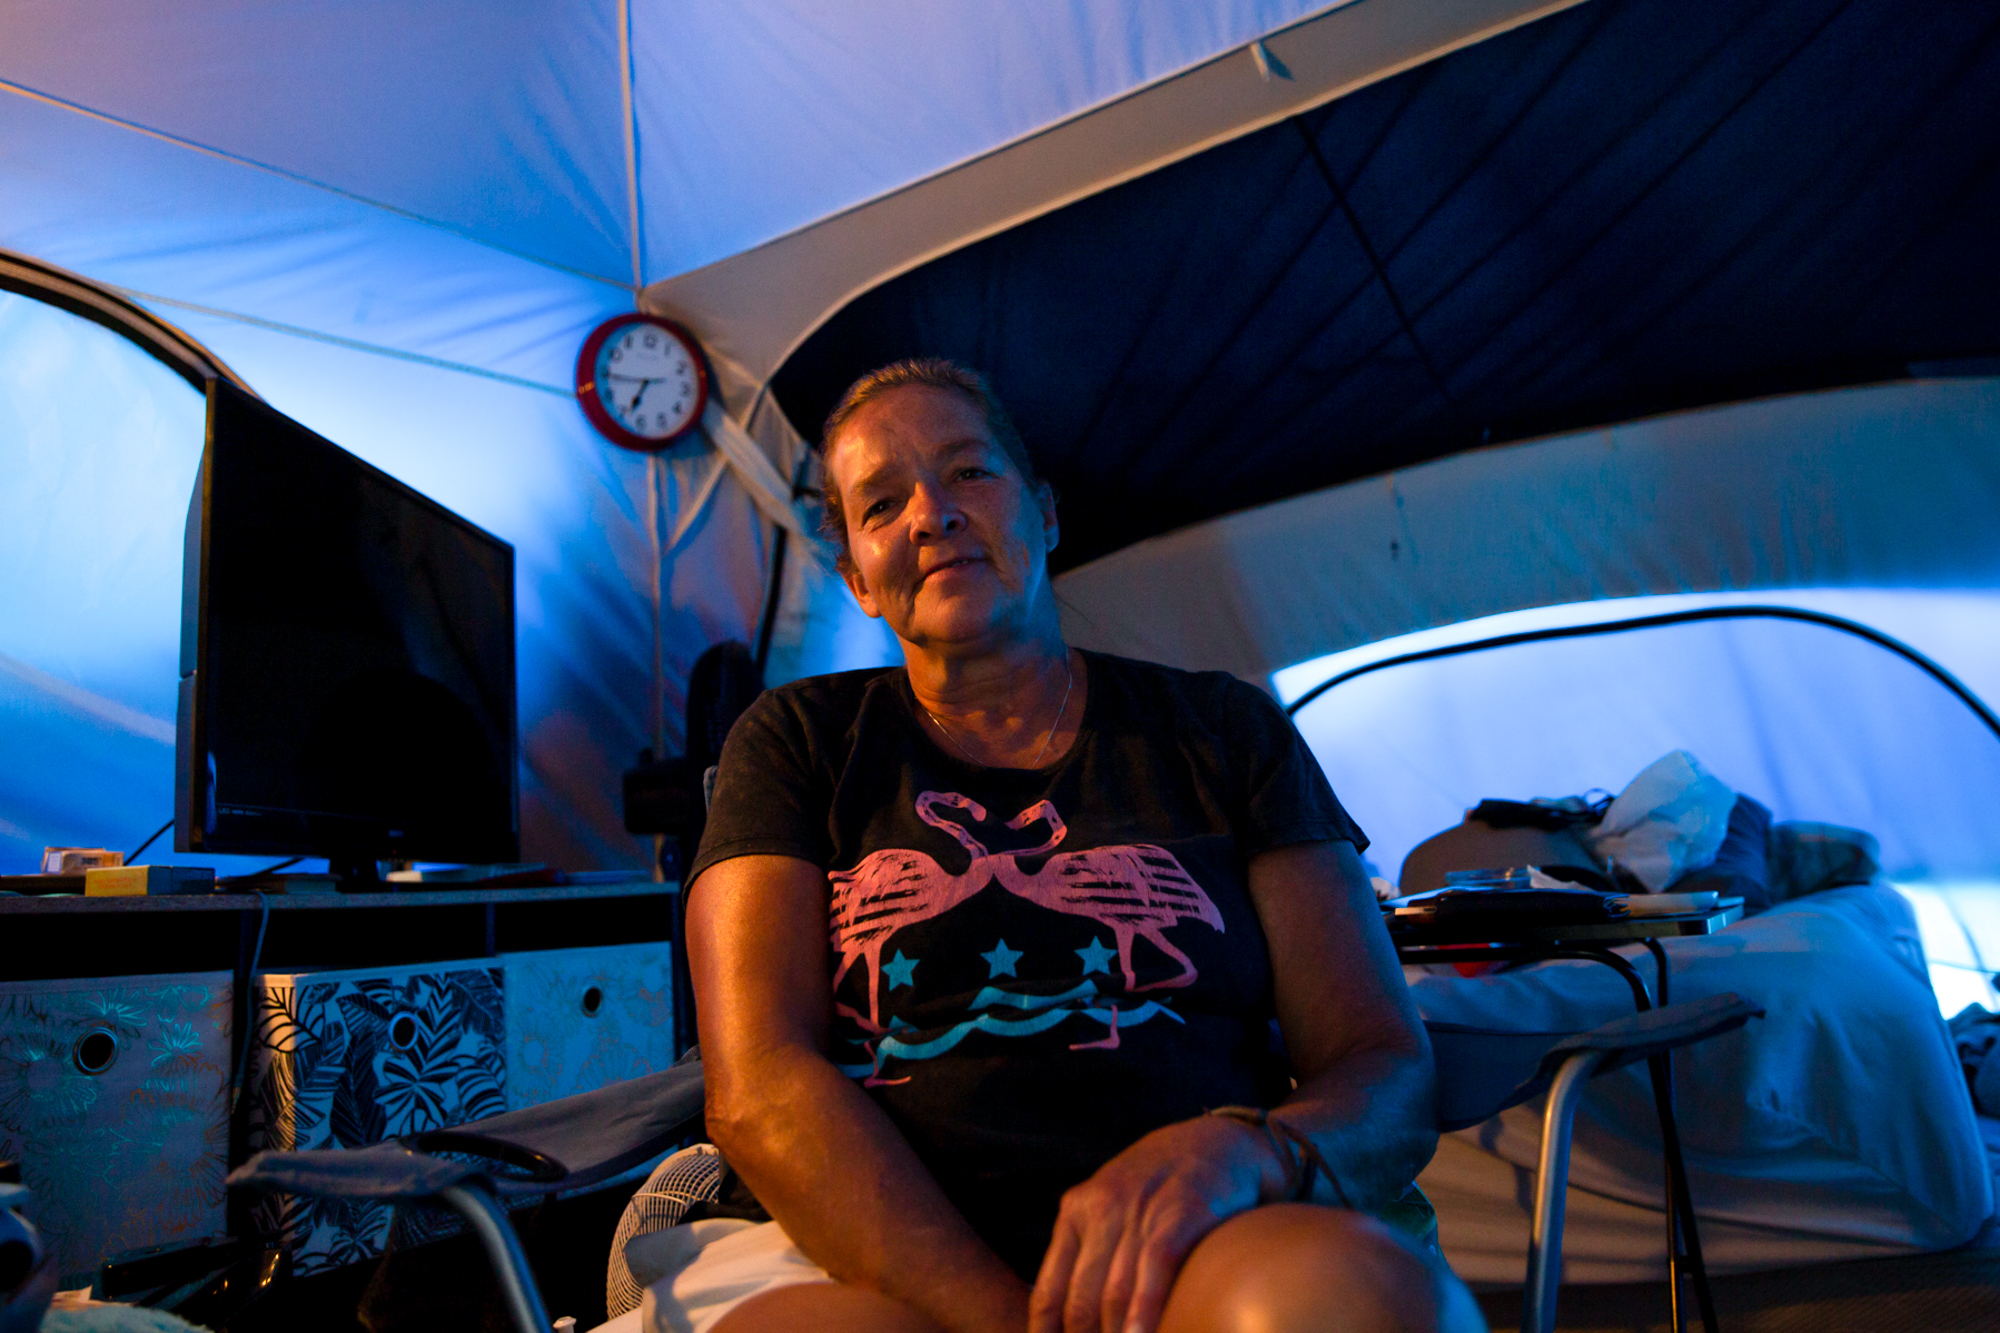 "Joyce Buschmann - Joyce Buschmann, whose home was destroyed in Hurricane Michael, now lives in a tent city in Youngstown, Florida. Buschmann's son lives 20 minutes away, but she stays in her tent so as not to burden him. ""Why leave when I'm perfectly happy here?"" she asked. (Stacy Fernández/News21)"